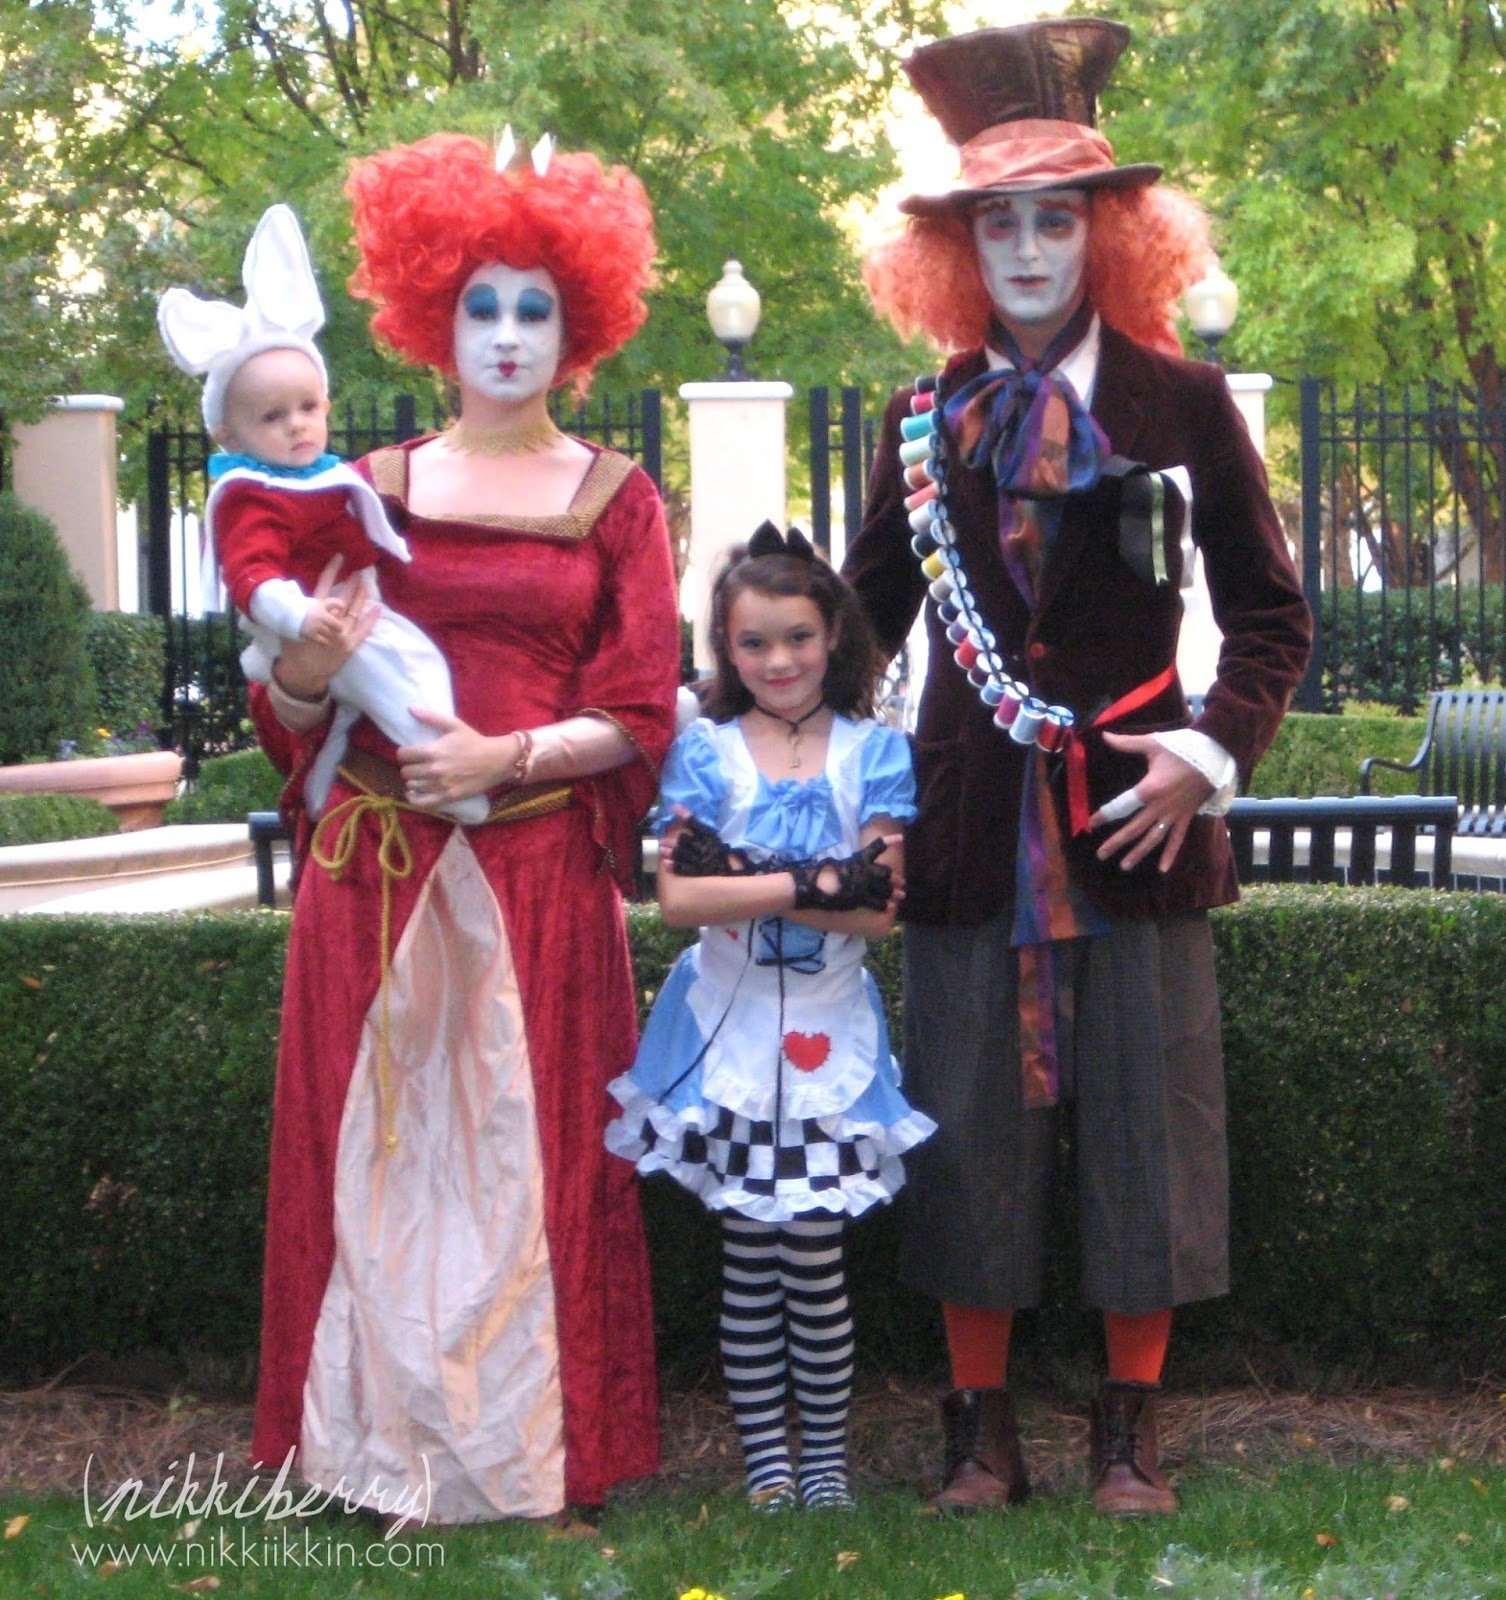 10 Fashionable Family Of Four Halloween Costume Ideas ftmd top ten tuesday family themed halloween costumes  sc 1 st  Unique Ideas 2018 & 10 Fashionable Family Of Four Halloween Costume Ideas